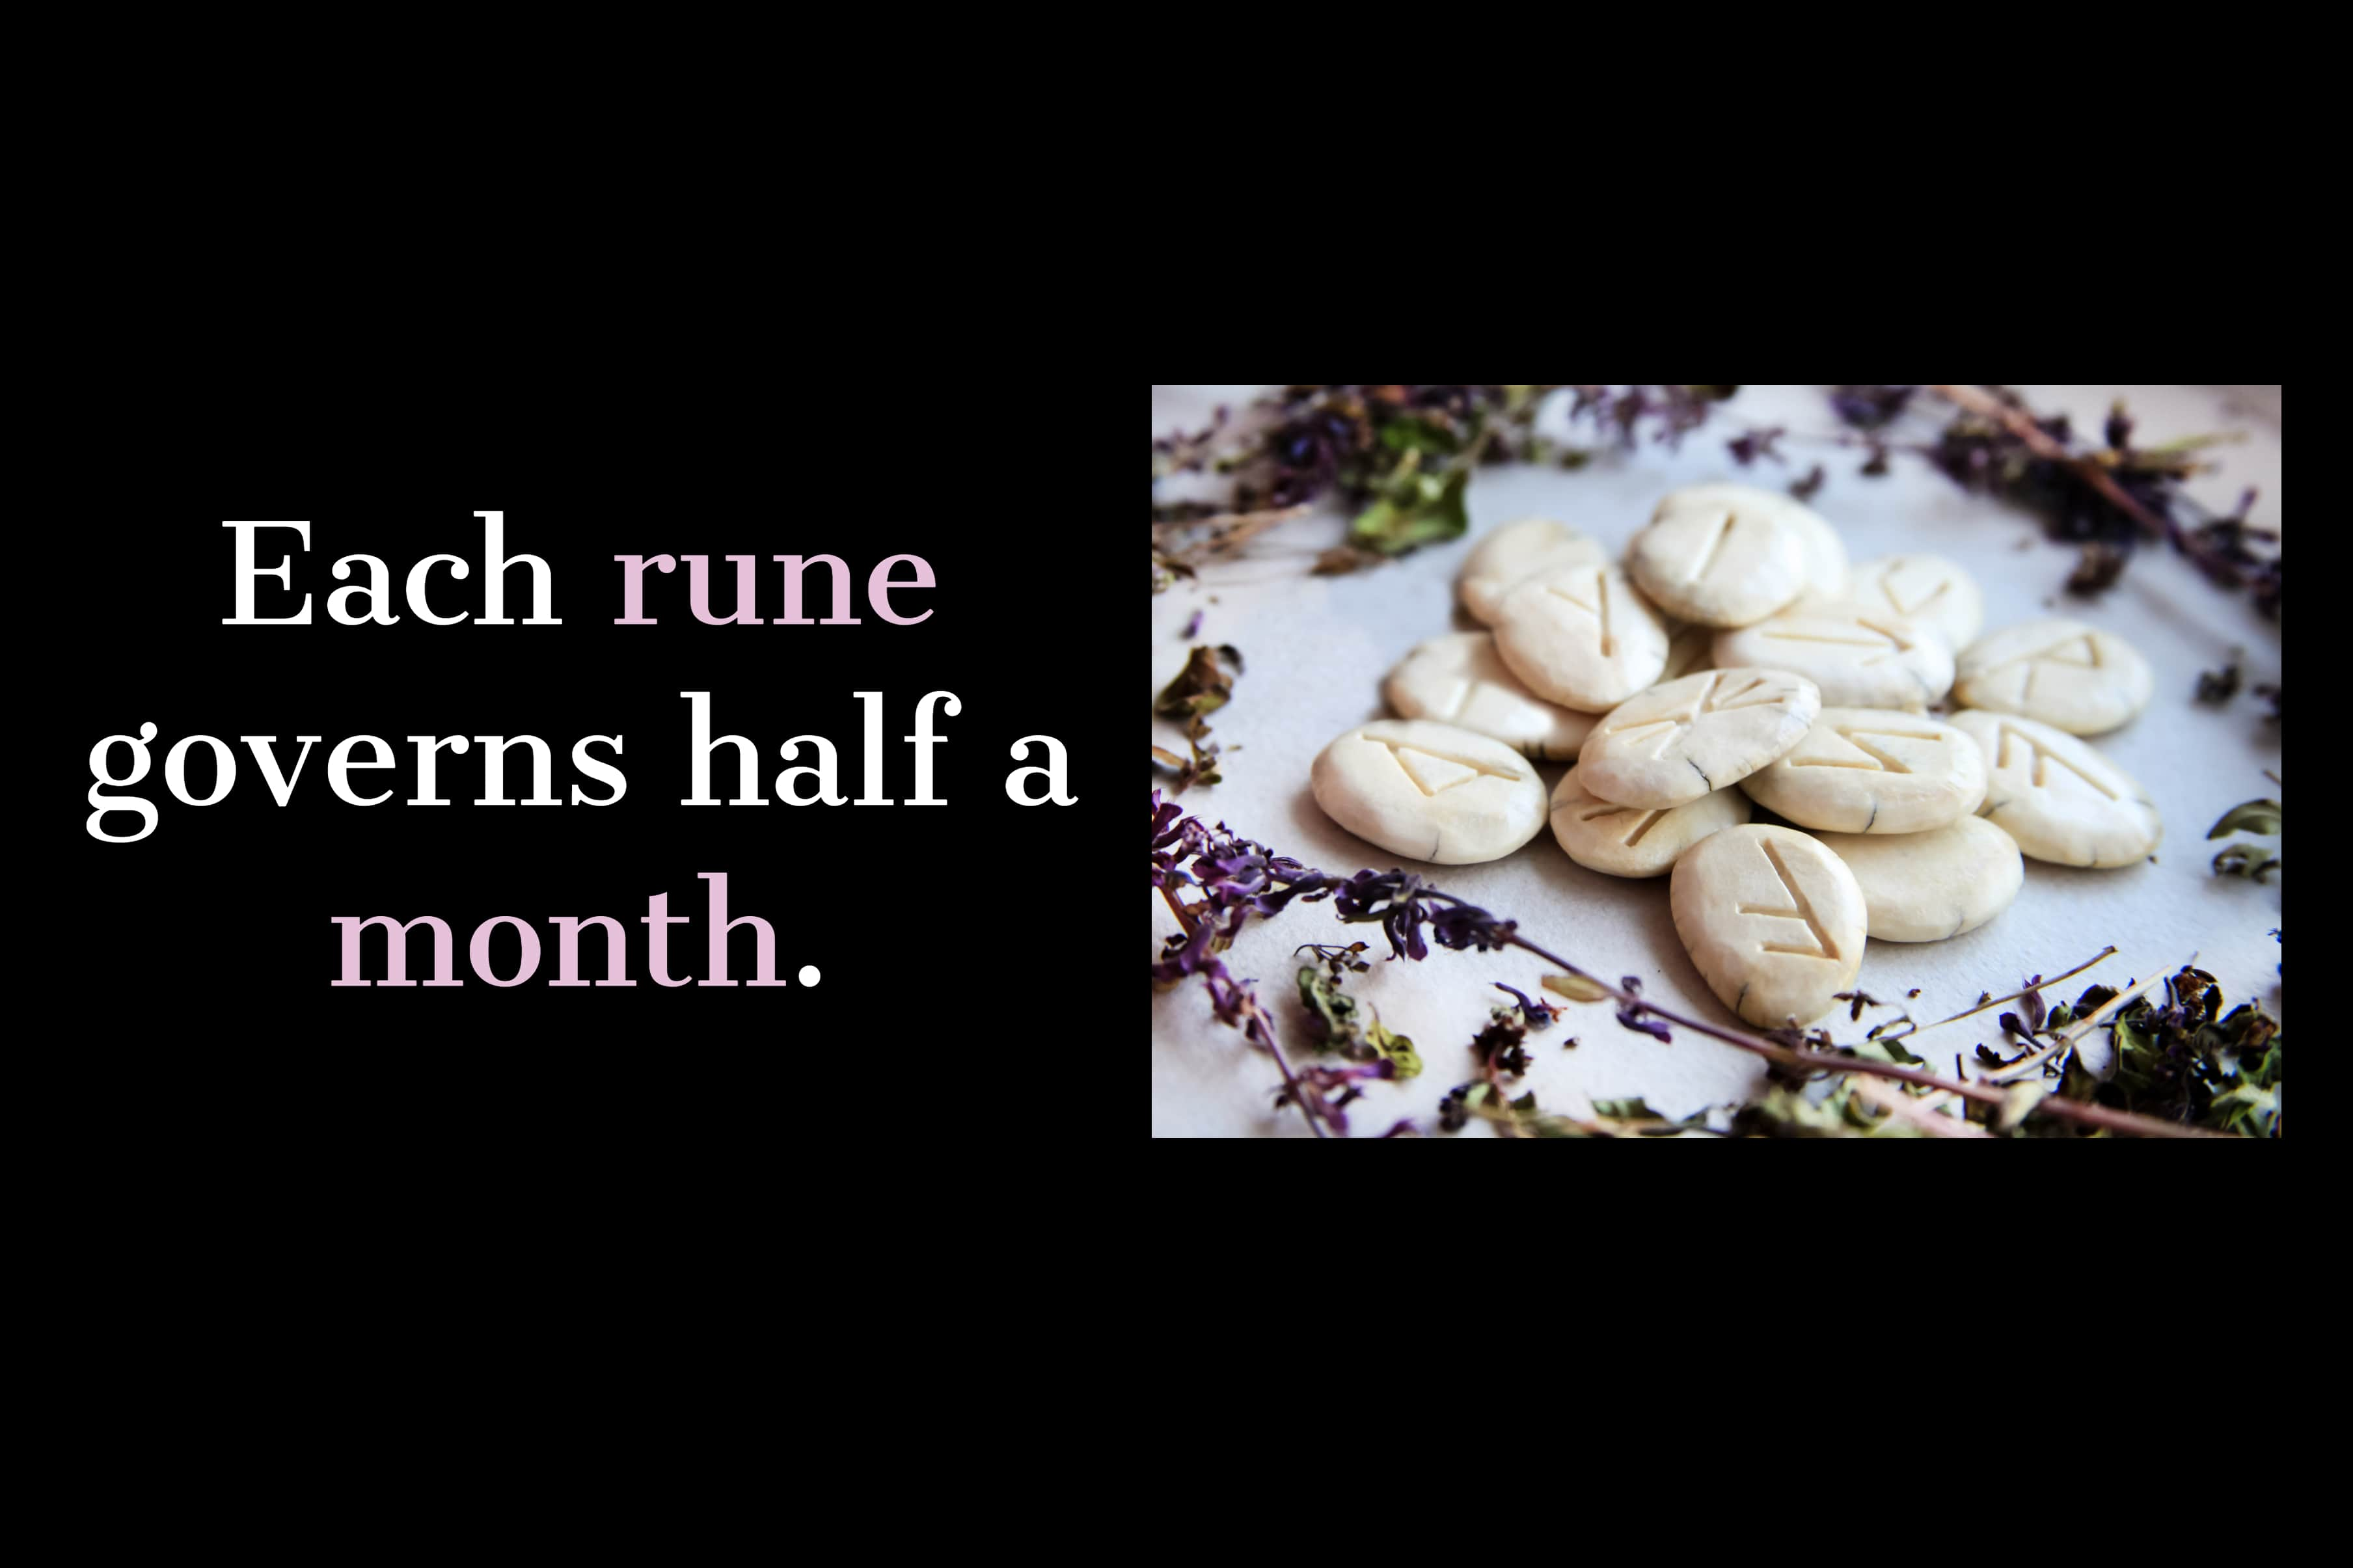 Scandinavian runes - handmade dies surrounded by dried flowers